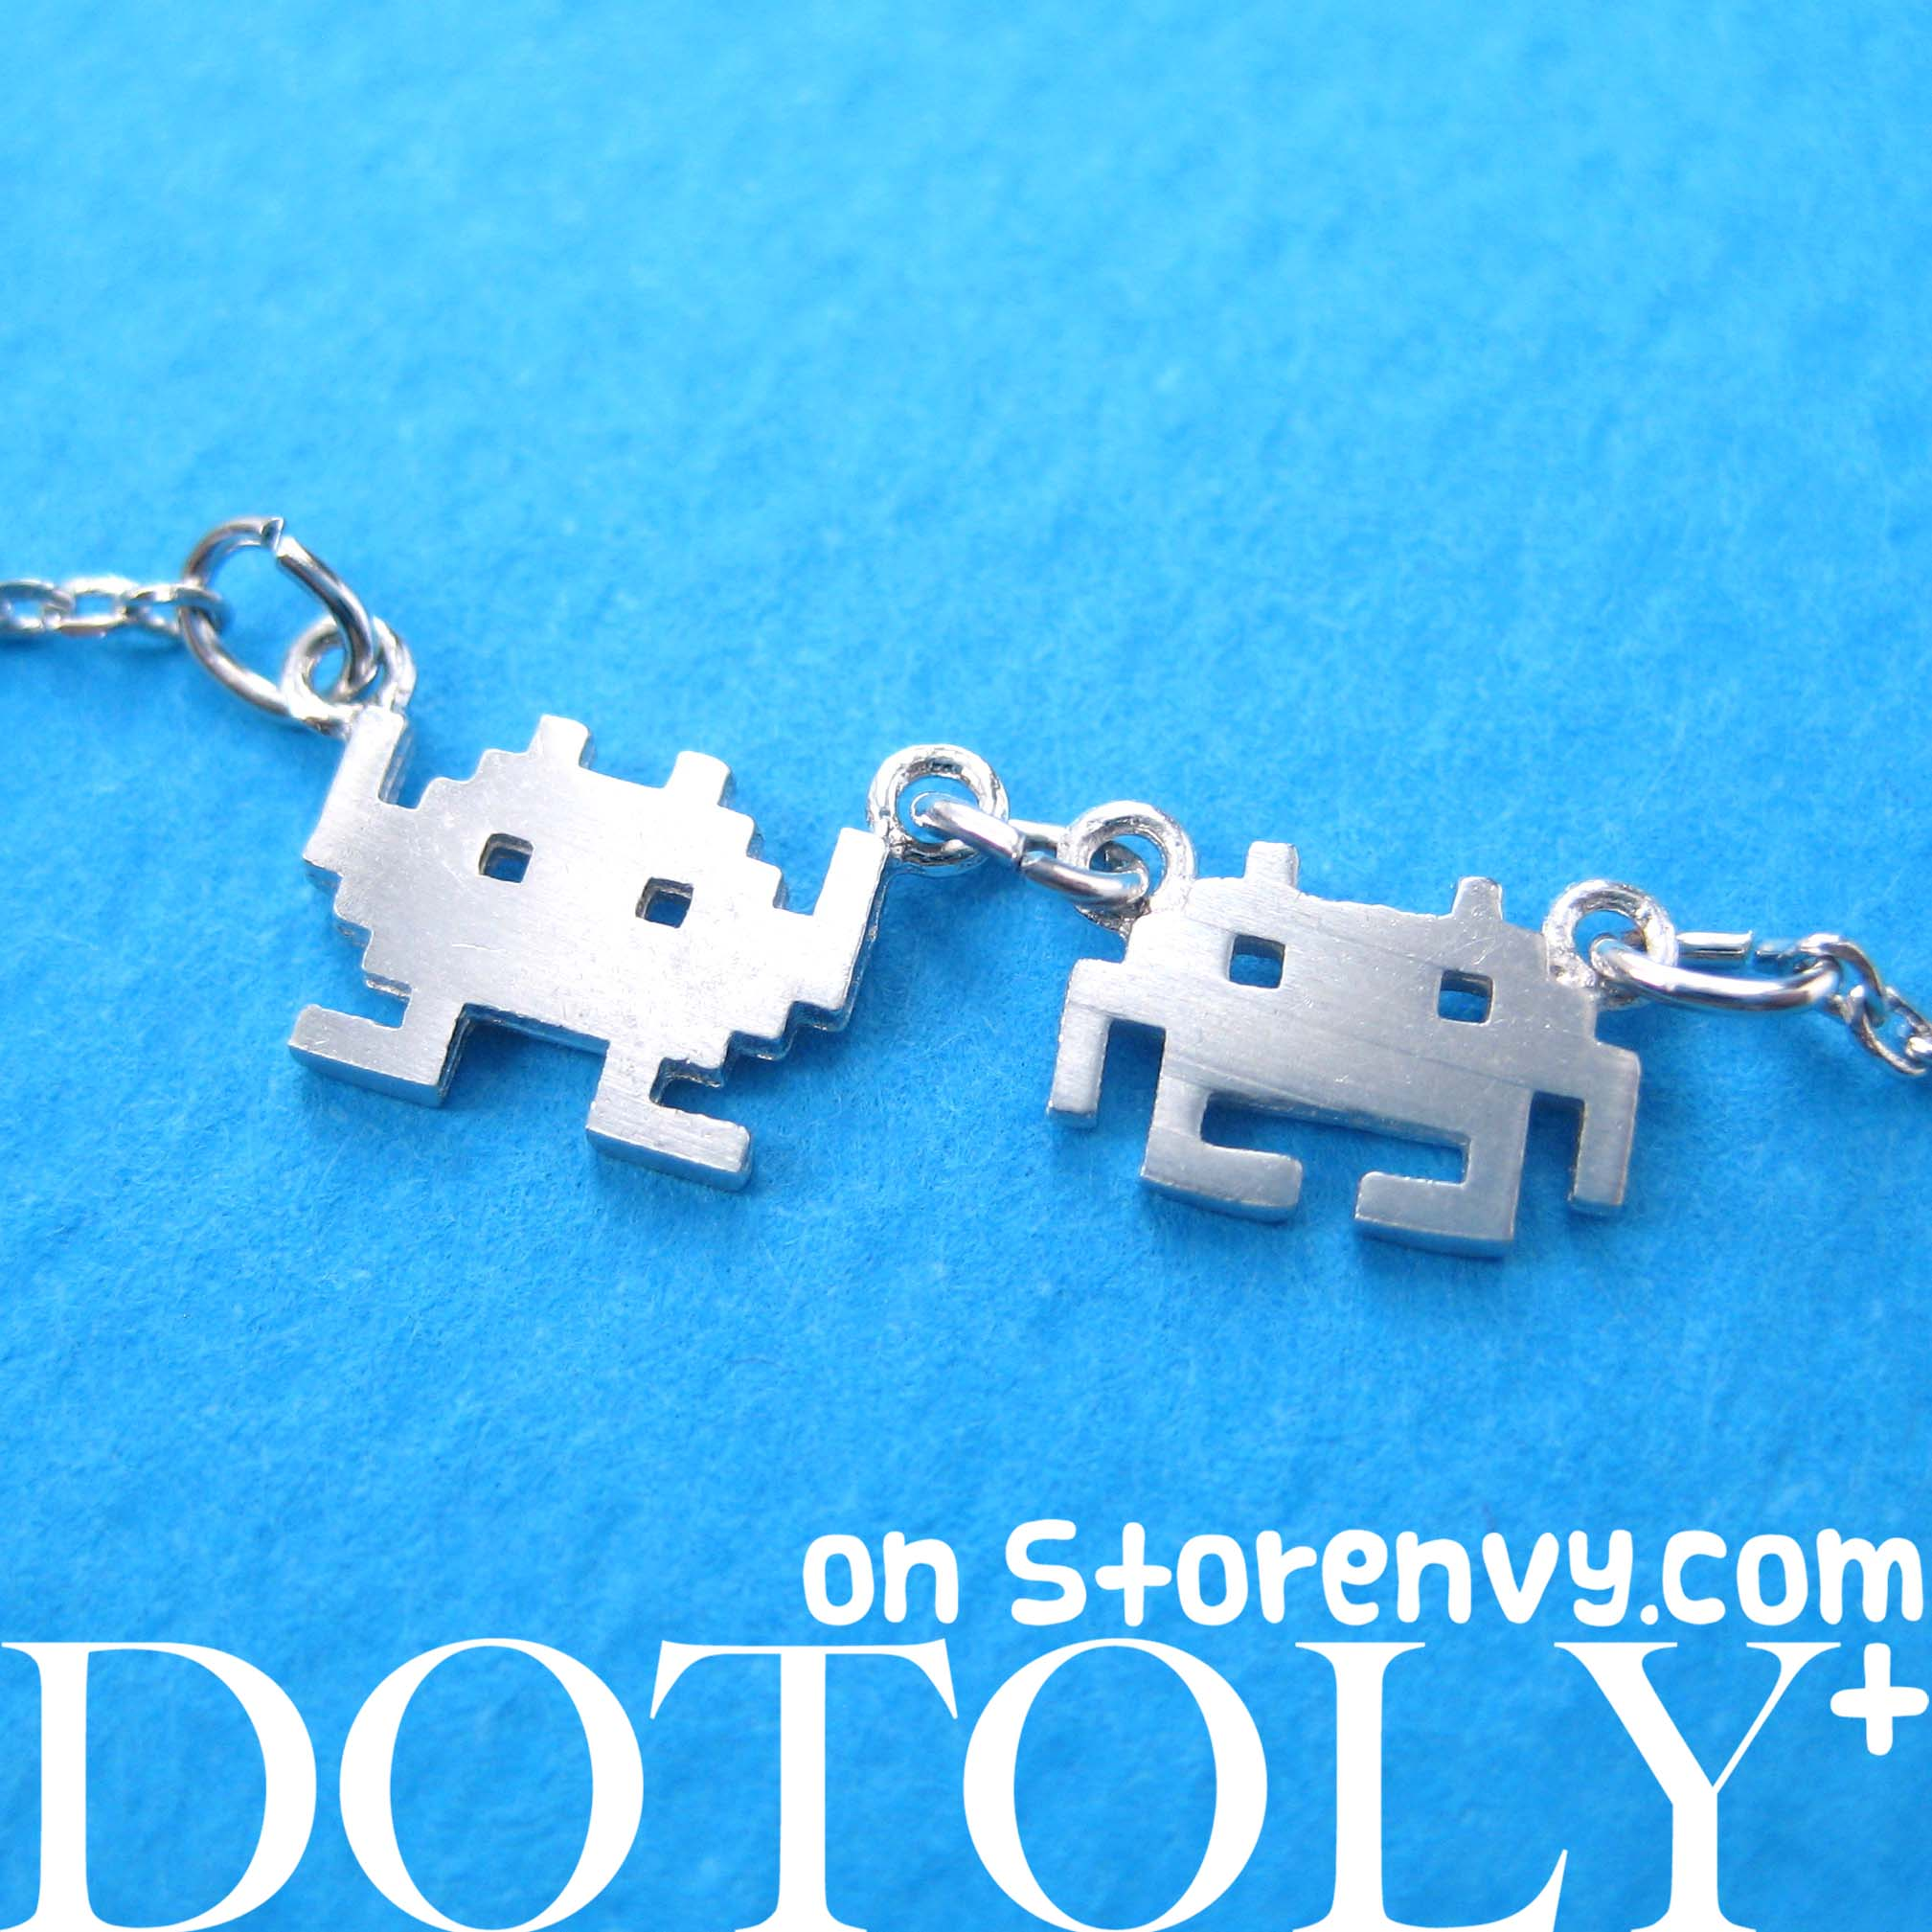 atari-space-invaders-alien-pixel-charm-necklace-in-sterling-silver